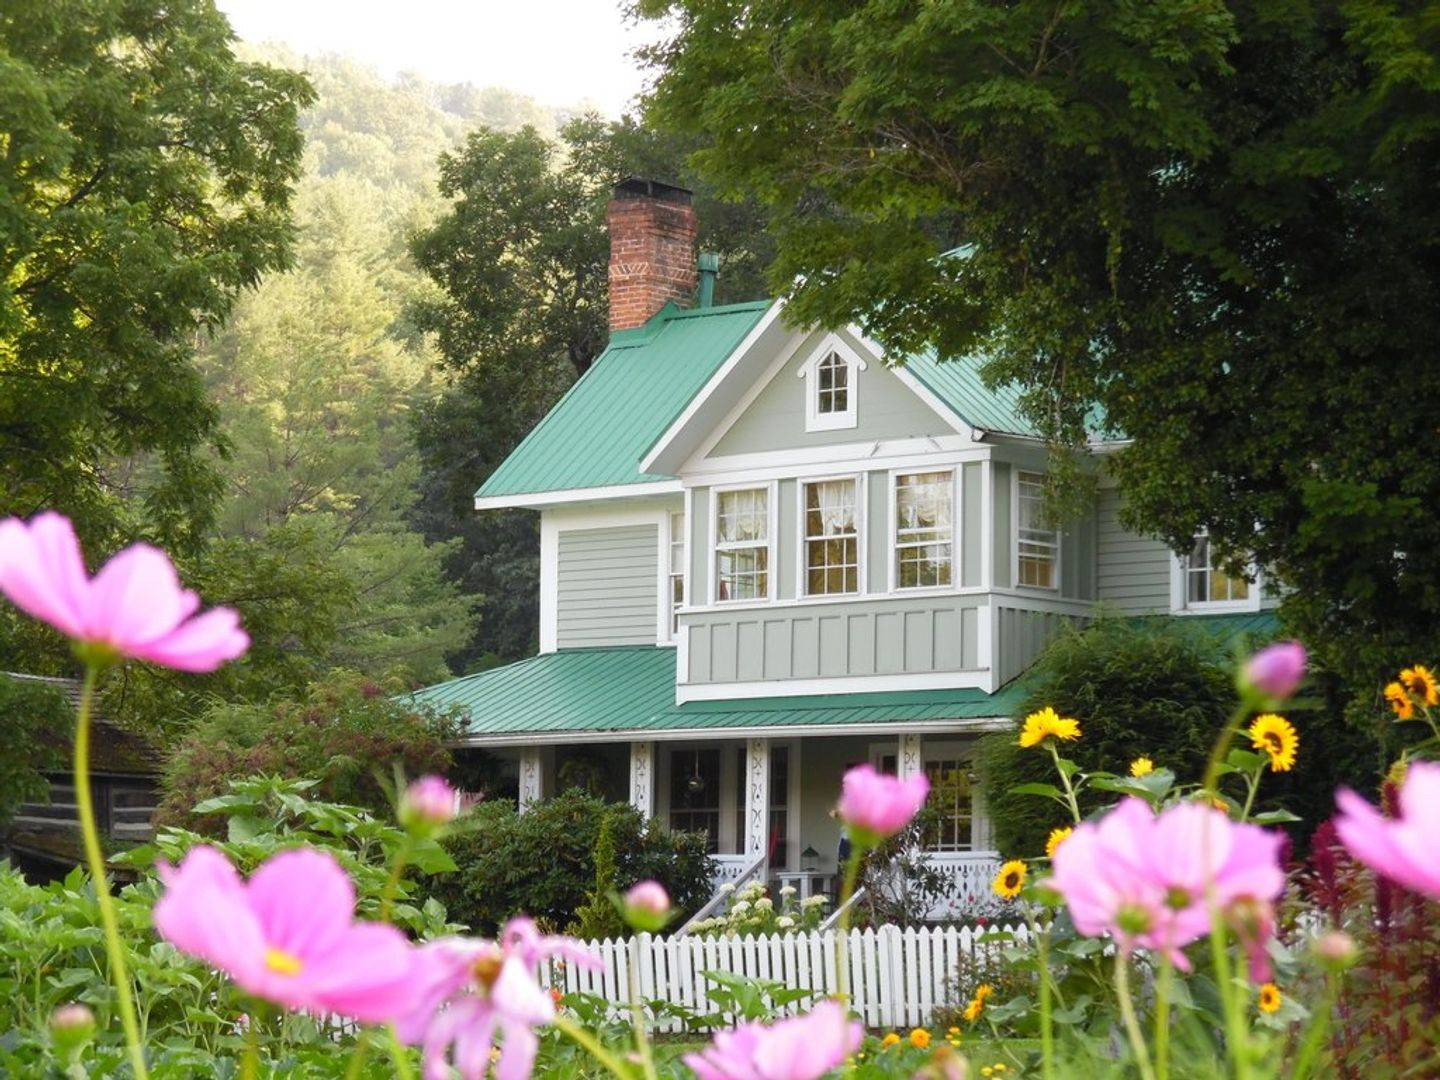 A close up of a flower garden in front of a house at The Mast Farm Inn.